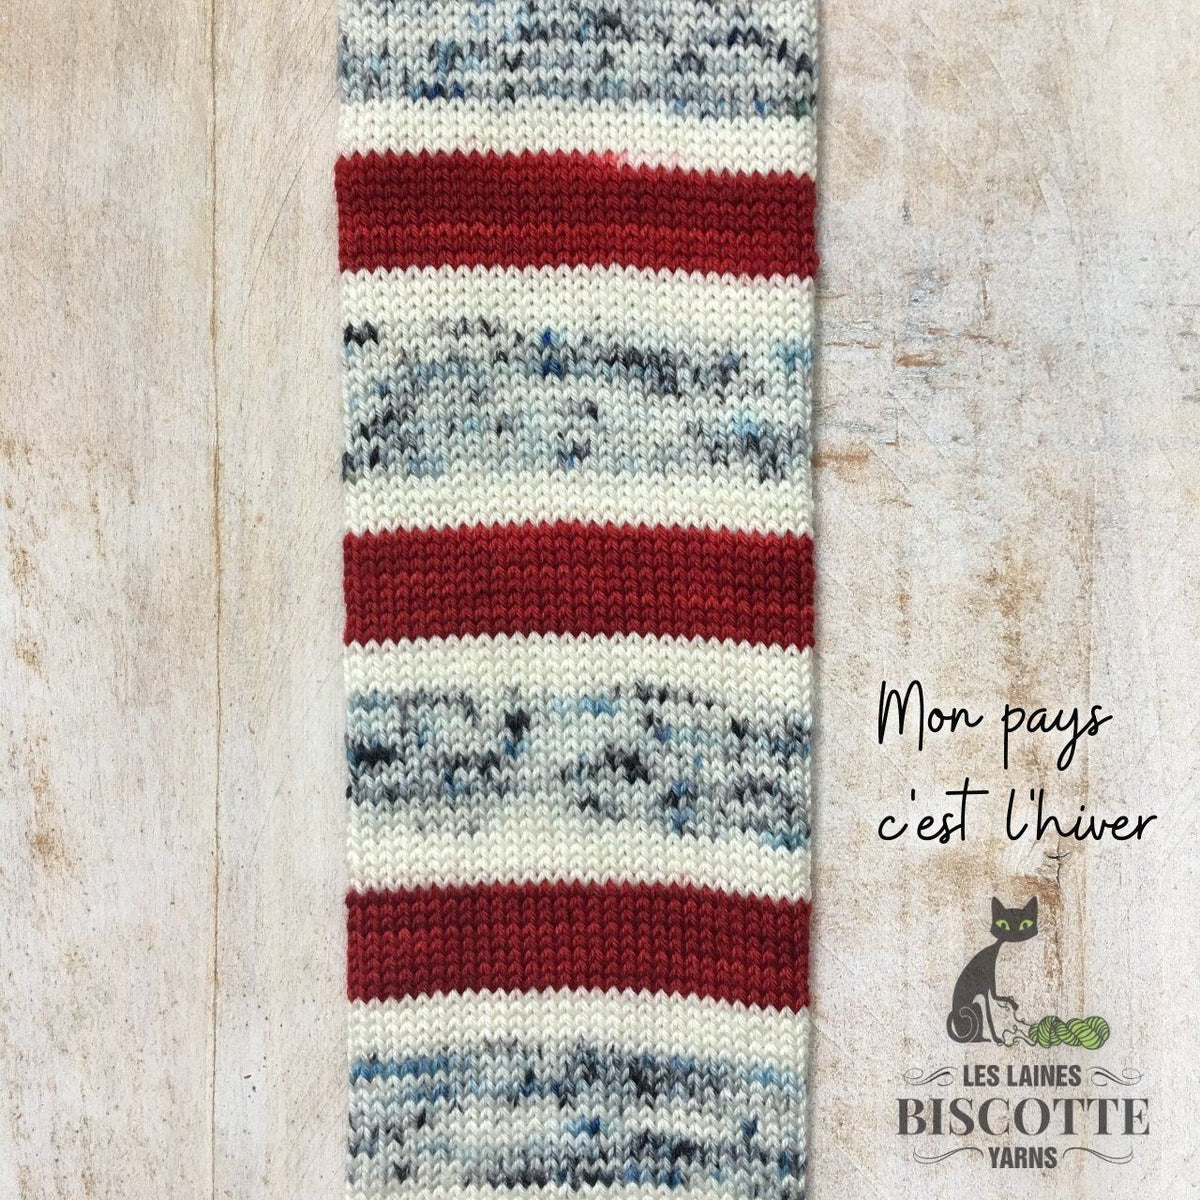 DK weight yarn ♥ Self-striping Mon Pays c'est l'hiver